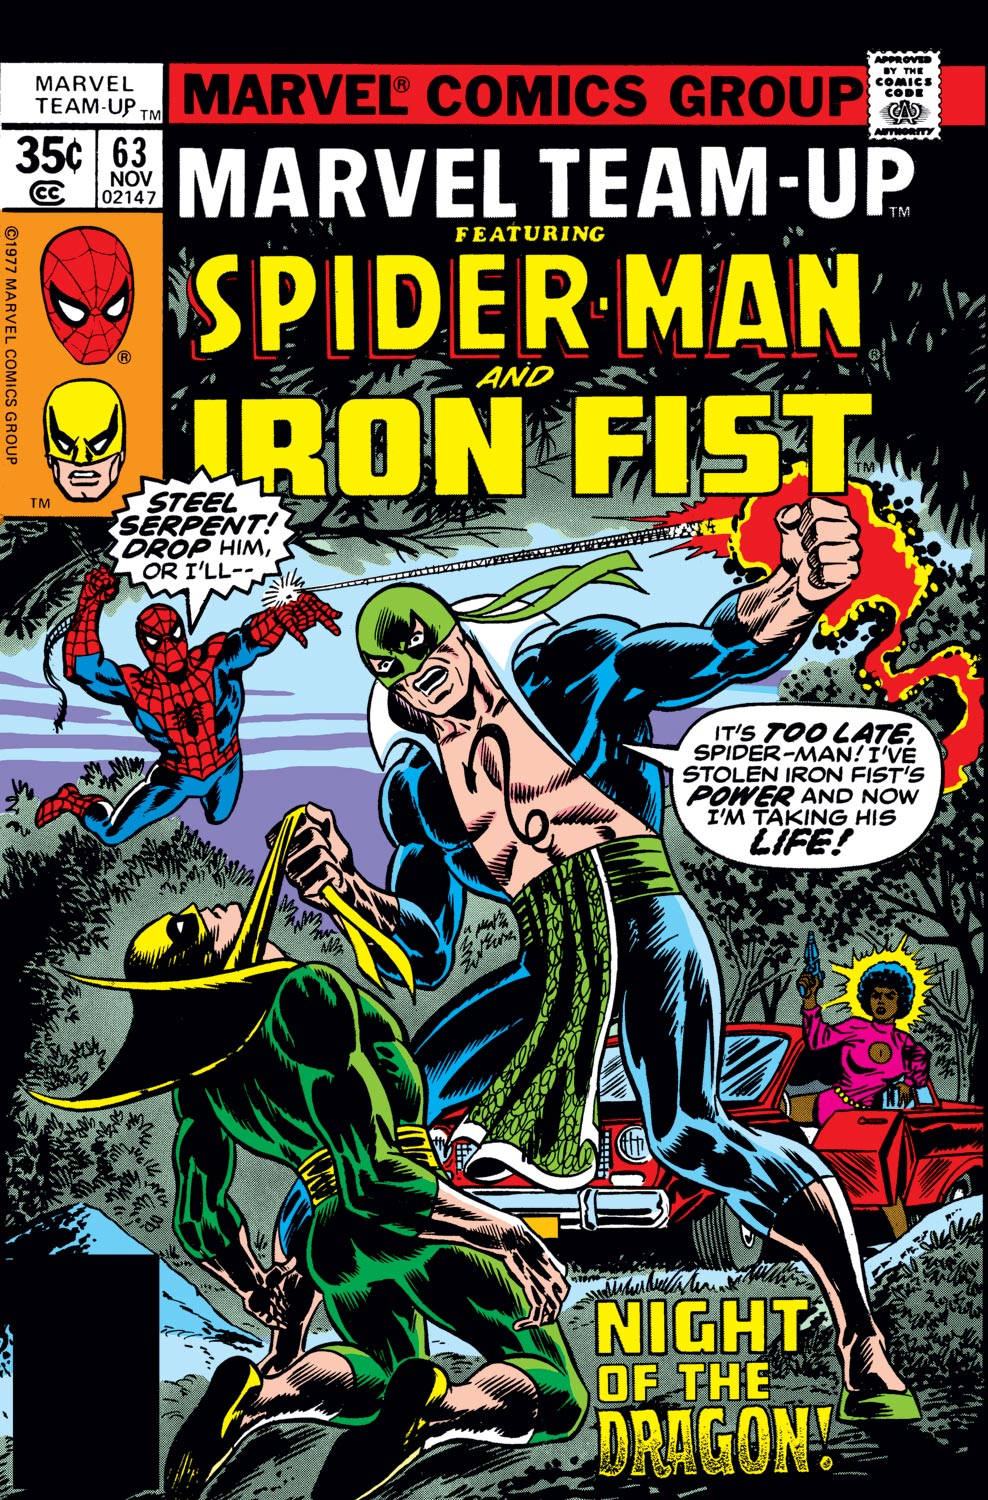 Marvel Team-Up (1972) #63